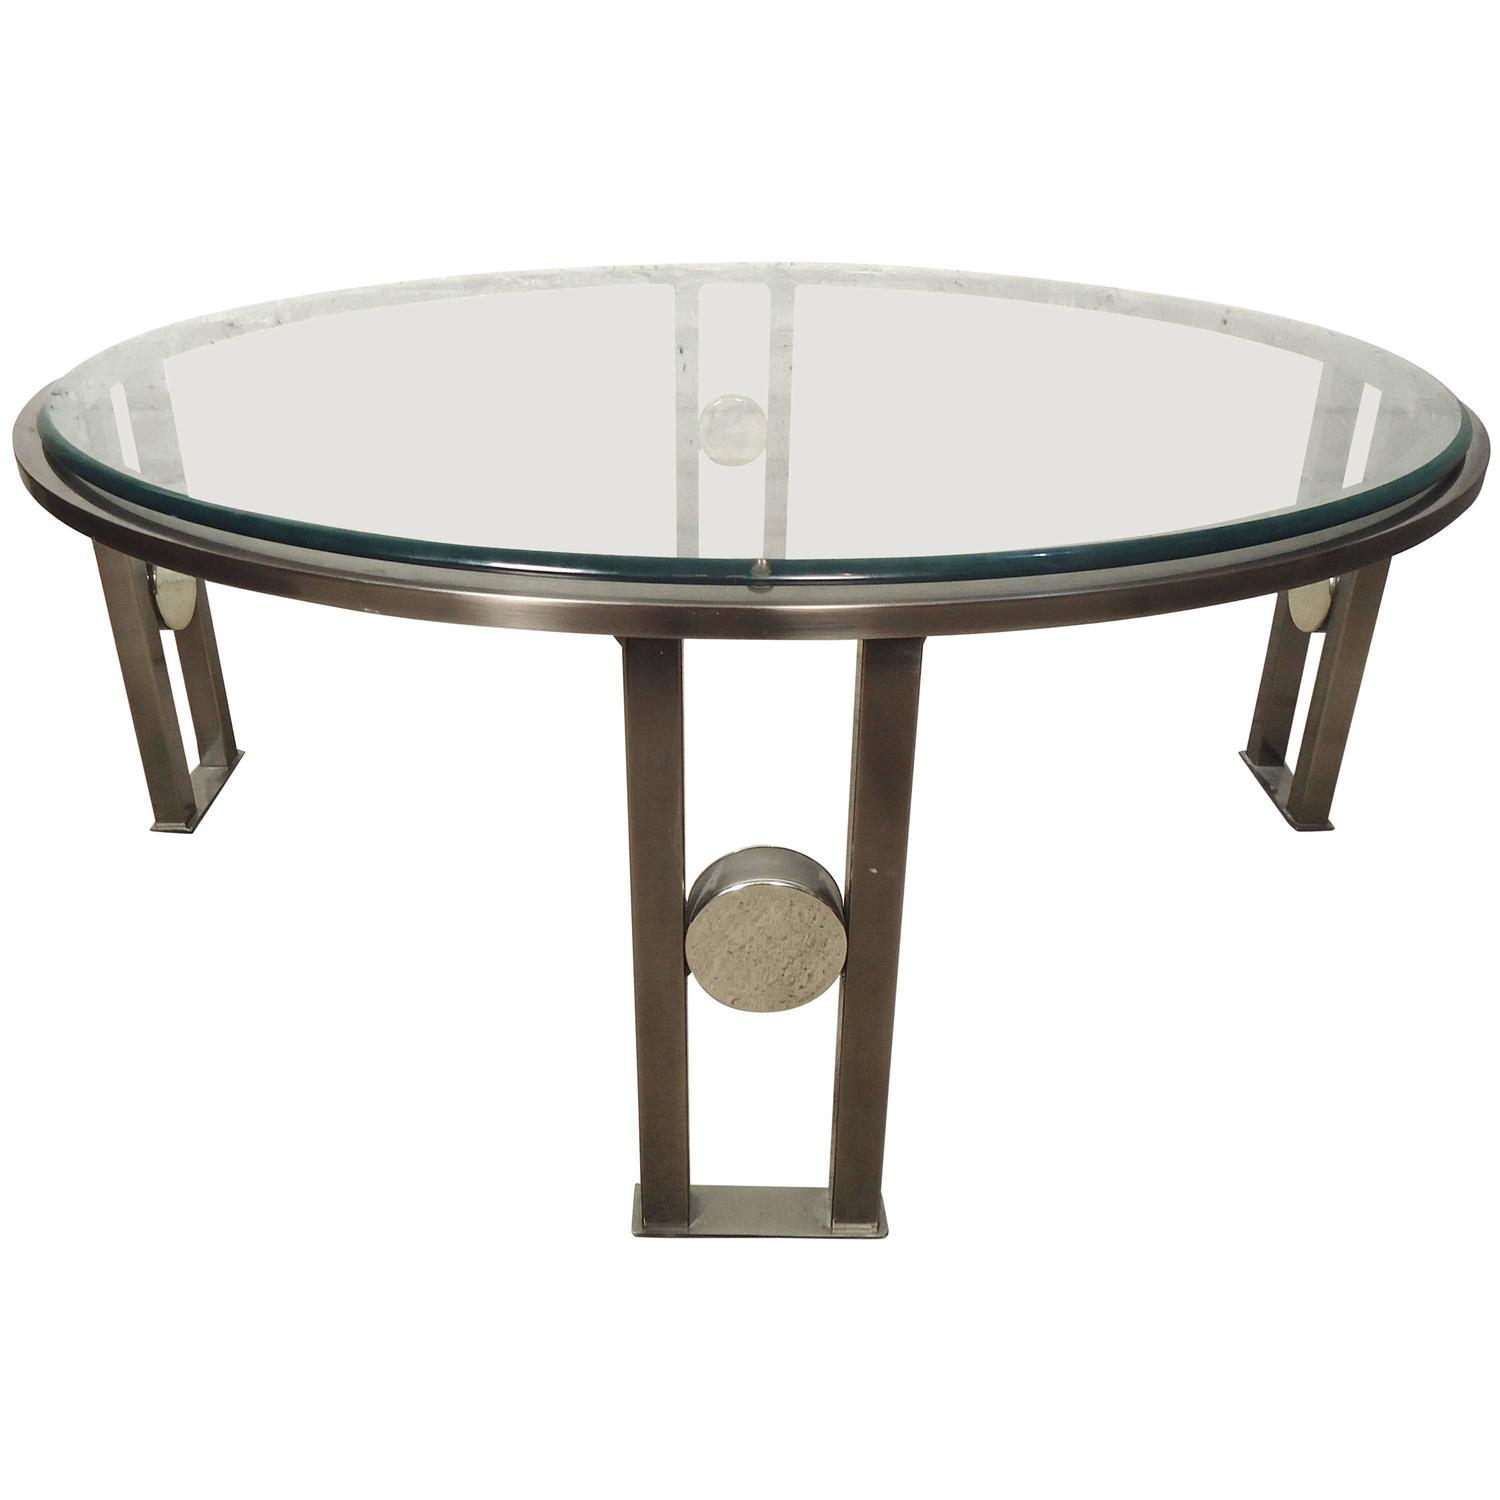 round glass top coffee table at 1stdibs With circular coffee table glass top